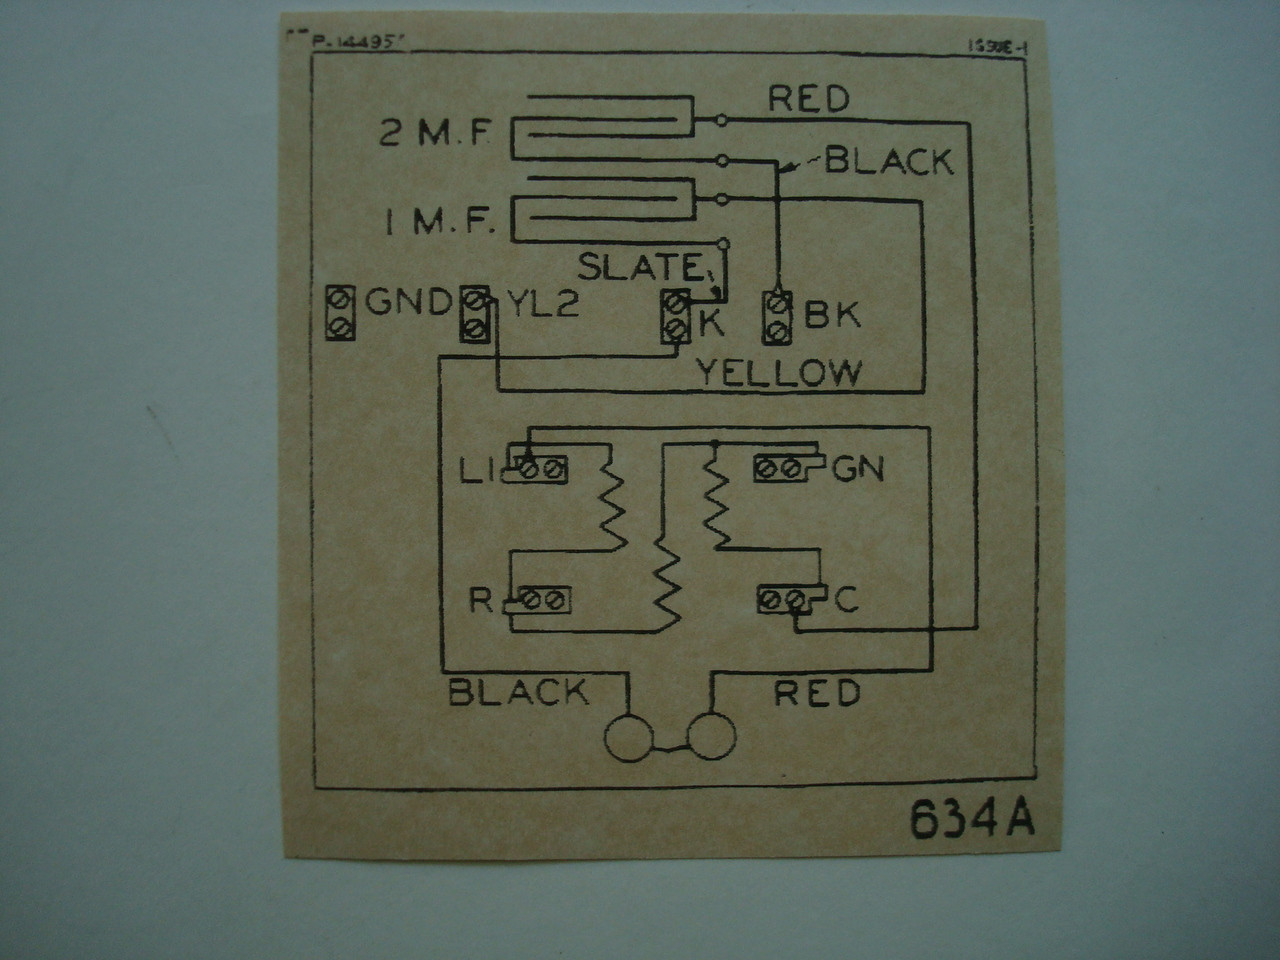 634 subset ringer wiring diagram glue on - Old Phone Shop Store on old telephone diagram, western electric telephone manuals, western electric wall phone, copper network diagram, western electric telephone parts, western electric payphone schematic, western electric telephone transformer, western electric network diagram, western electric telephones history, western electric 202, western electric antique telephones, western electric telephones wall mount, western plow solenoid wiring, western electric telephone line, western electric telephone repair, natural gas meter parts diagram, western electric telephone identification, phone diagram, utility pole diagram,